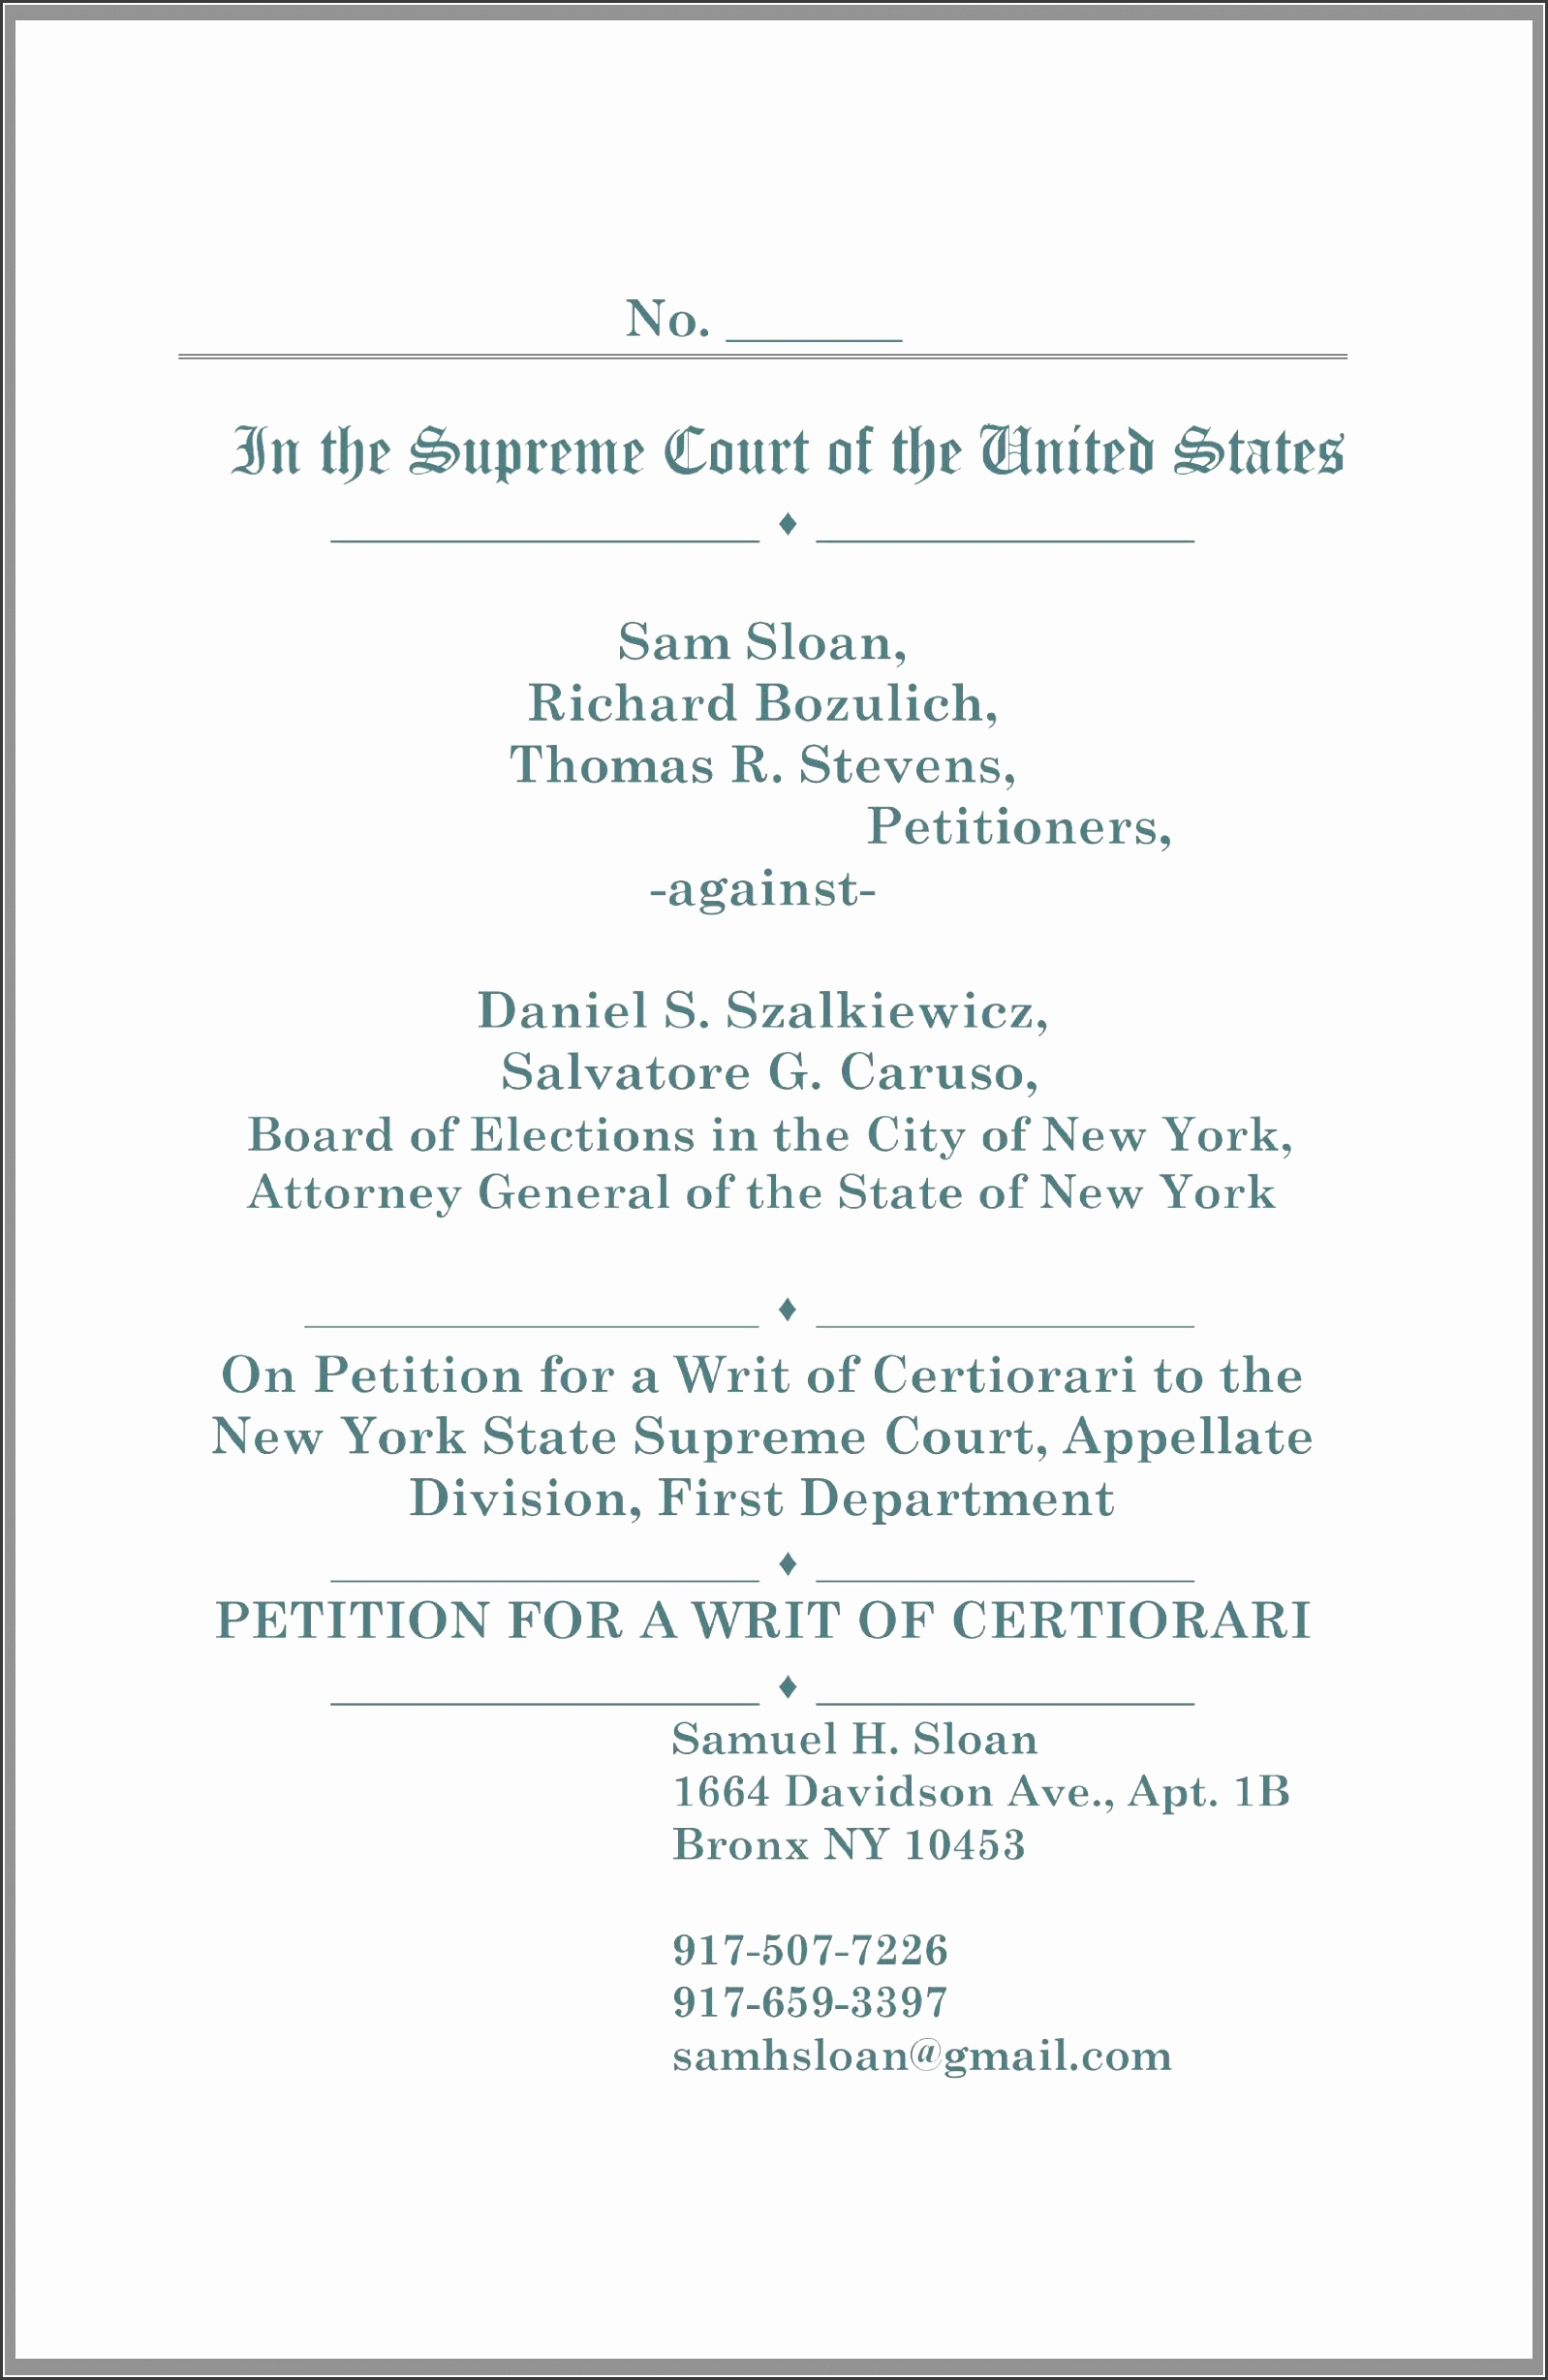 quotations petition for a writ of certiorari in sloan vs szalkiewicz and board of elections in the